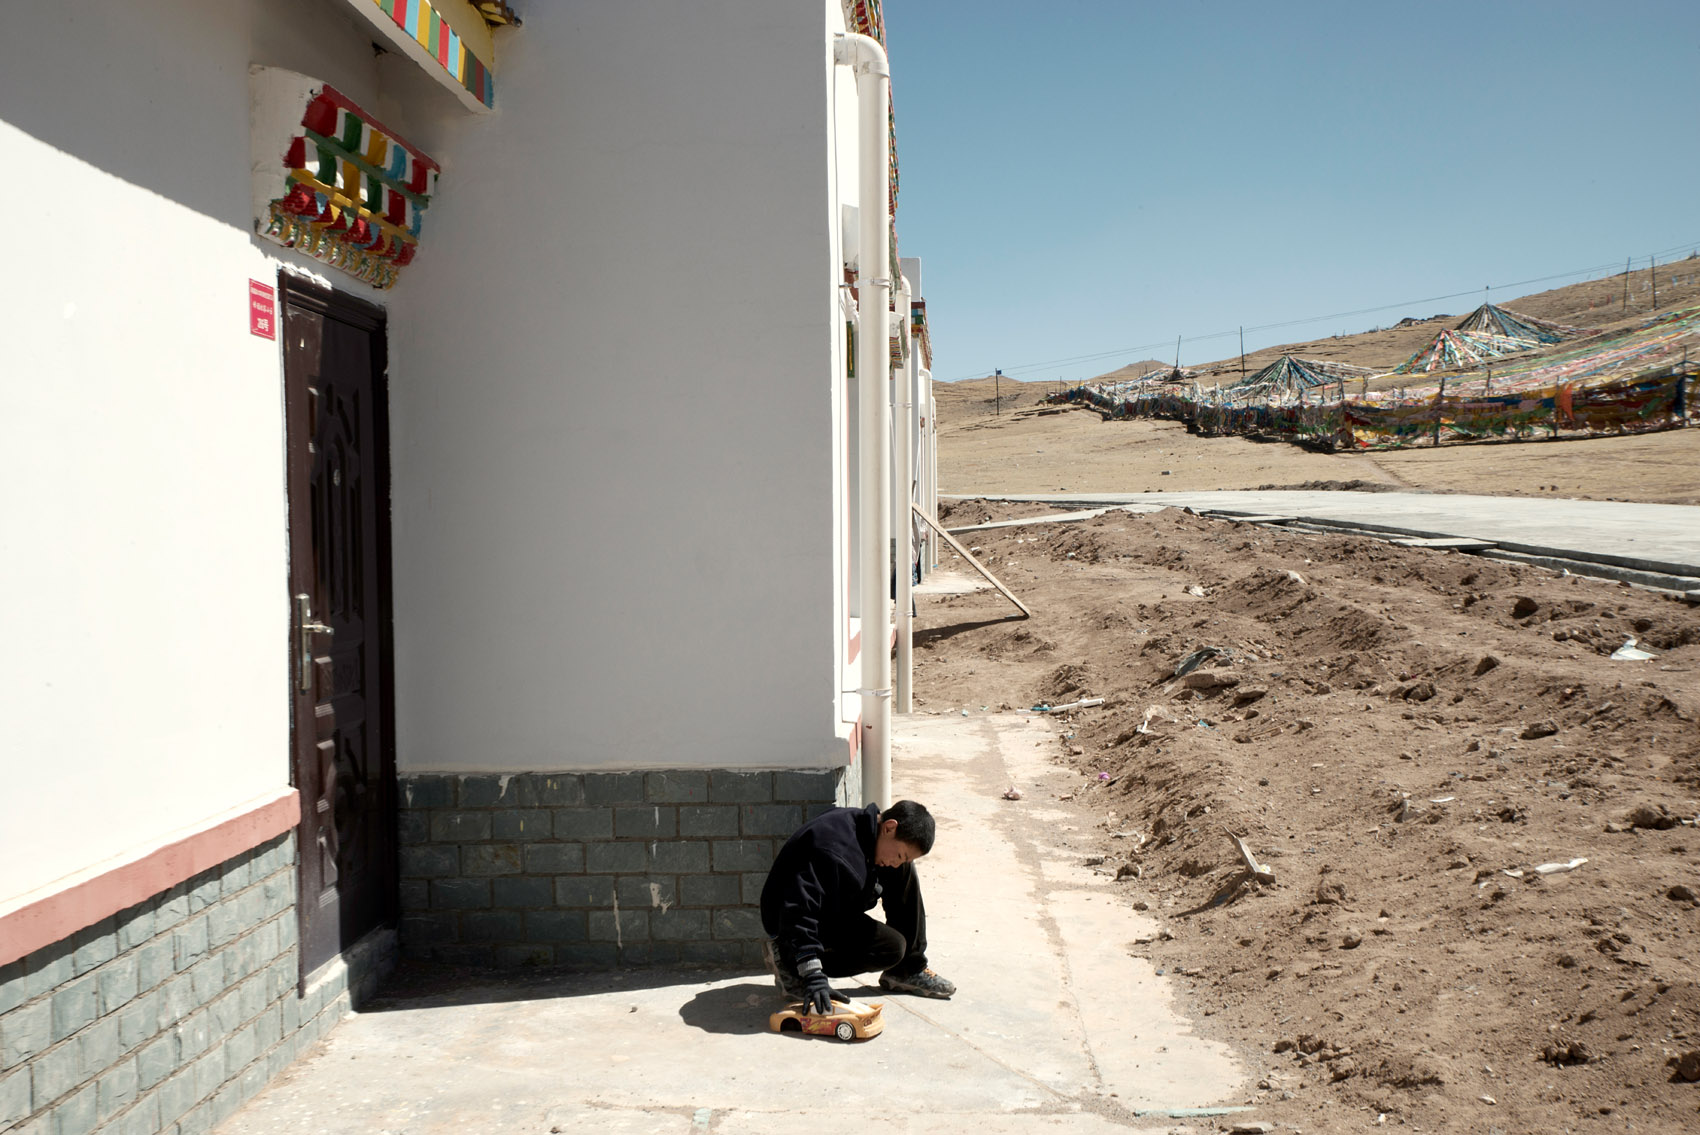 A Tibetan boy playing with a toy next to an empty home part of a recently built housing project for relocated Tibetan nomads in Madoi (Qinghai).